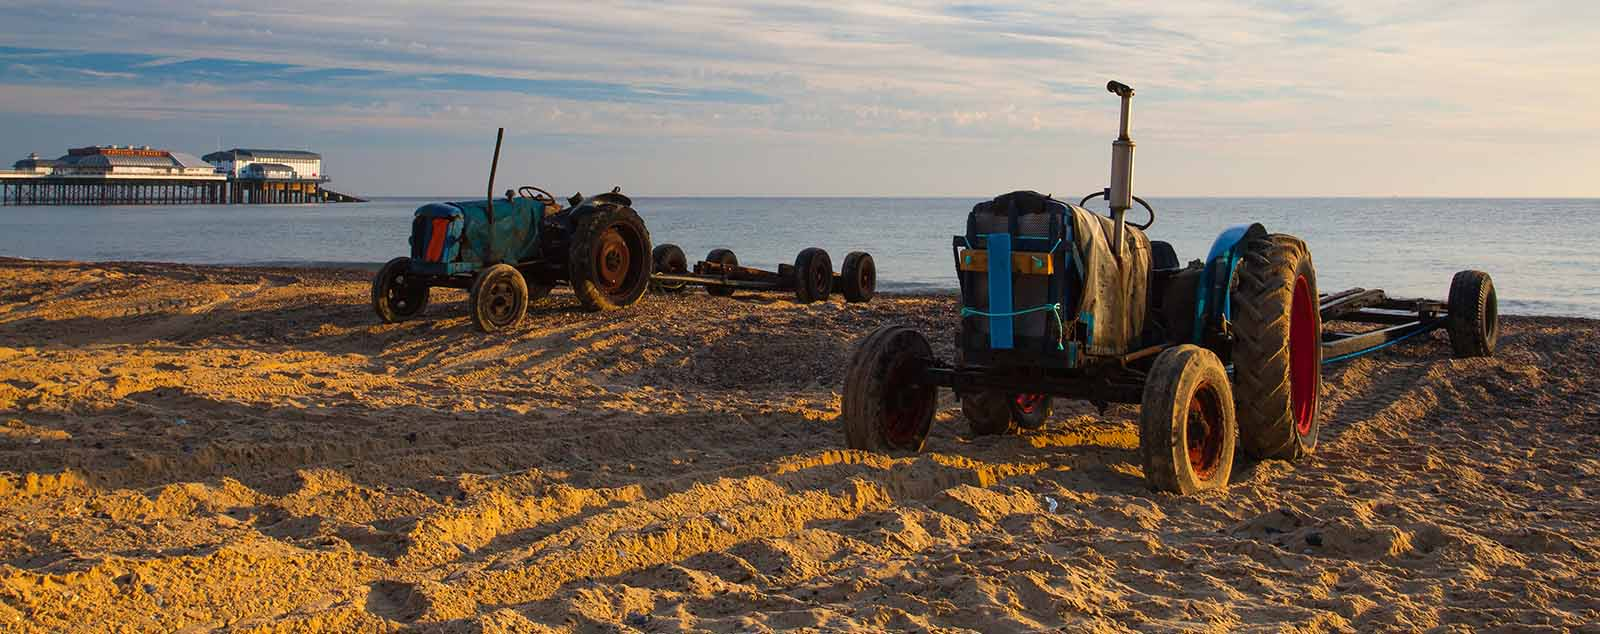 Two tractors on the beach sand in front of the water